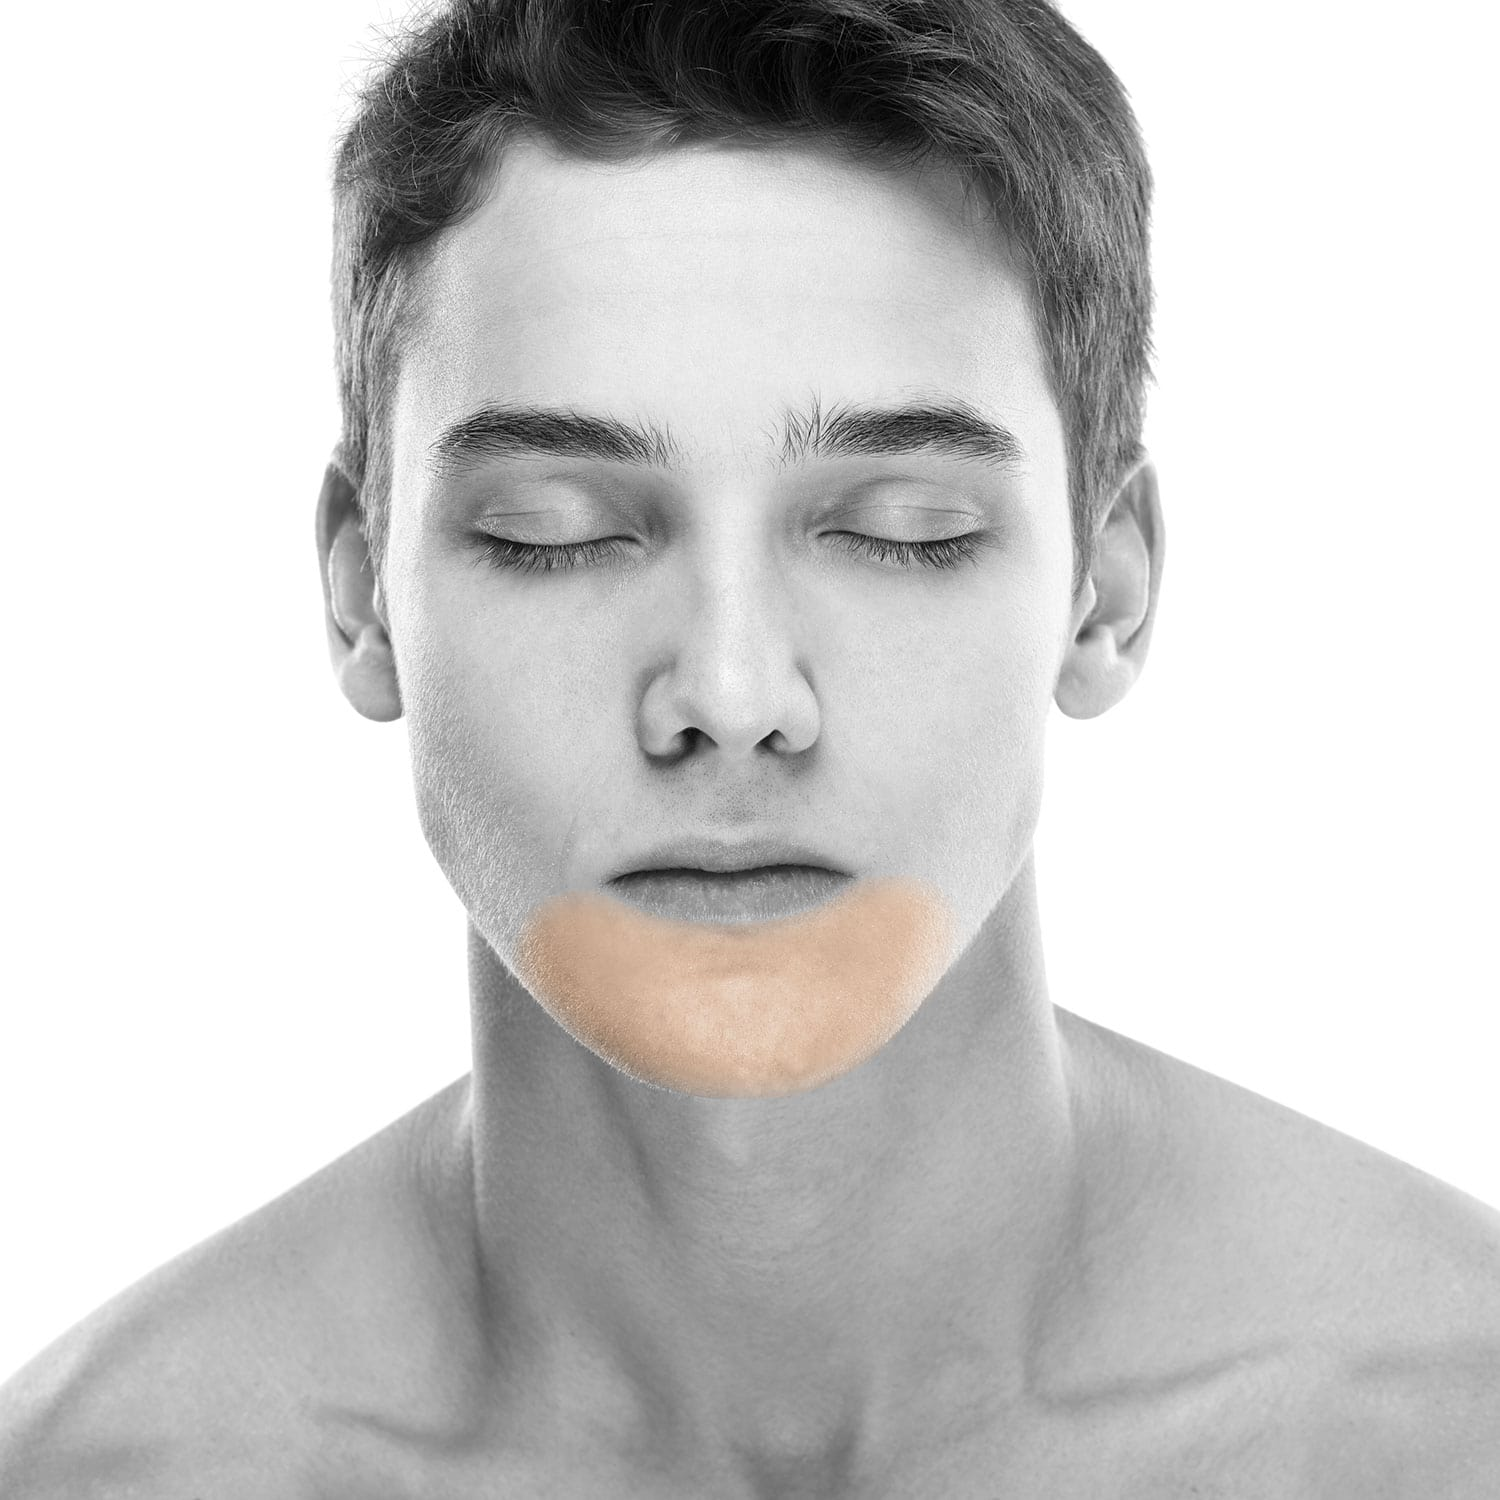 Men's Extended Chin Laser Hair Removal in NYC